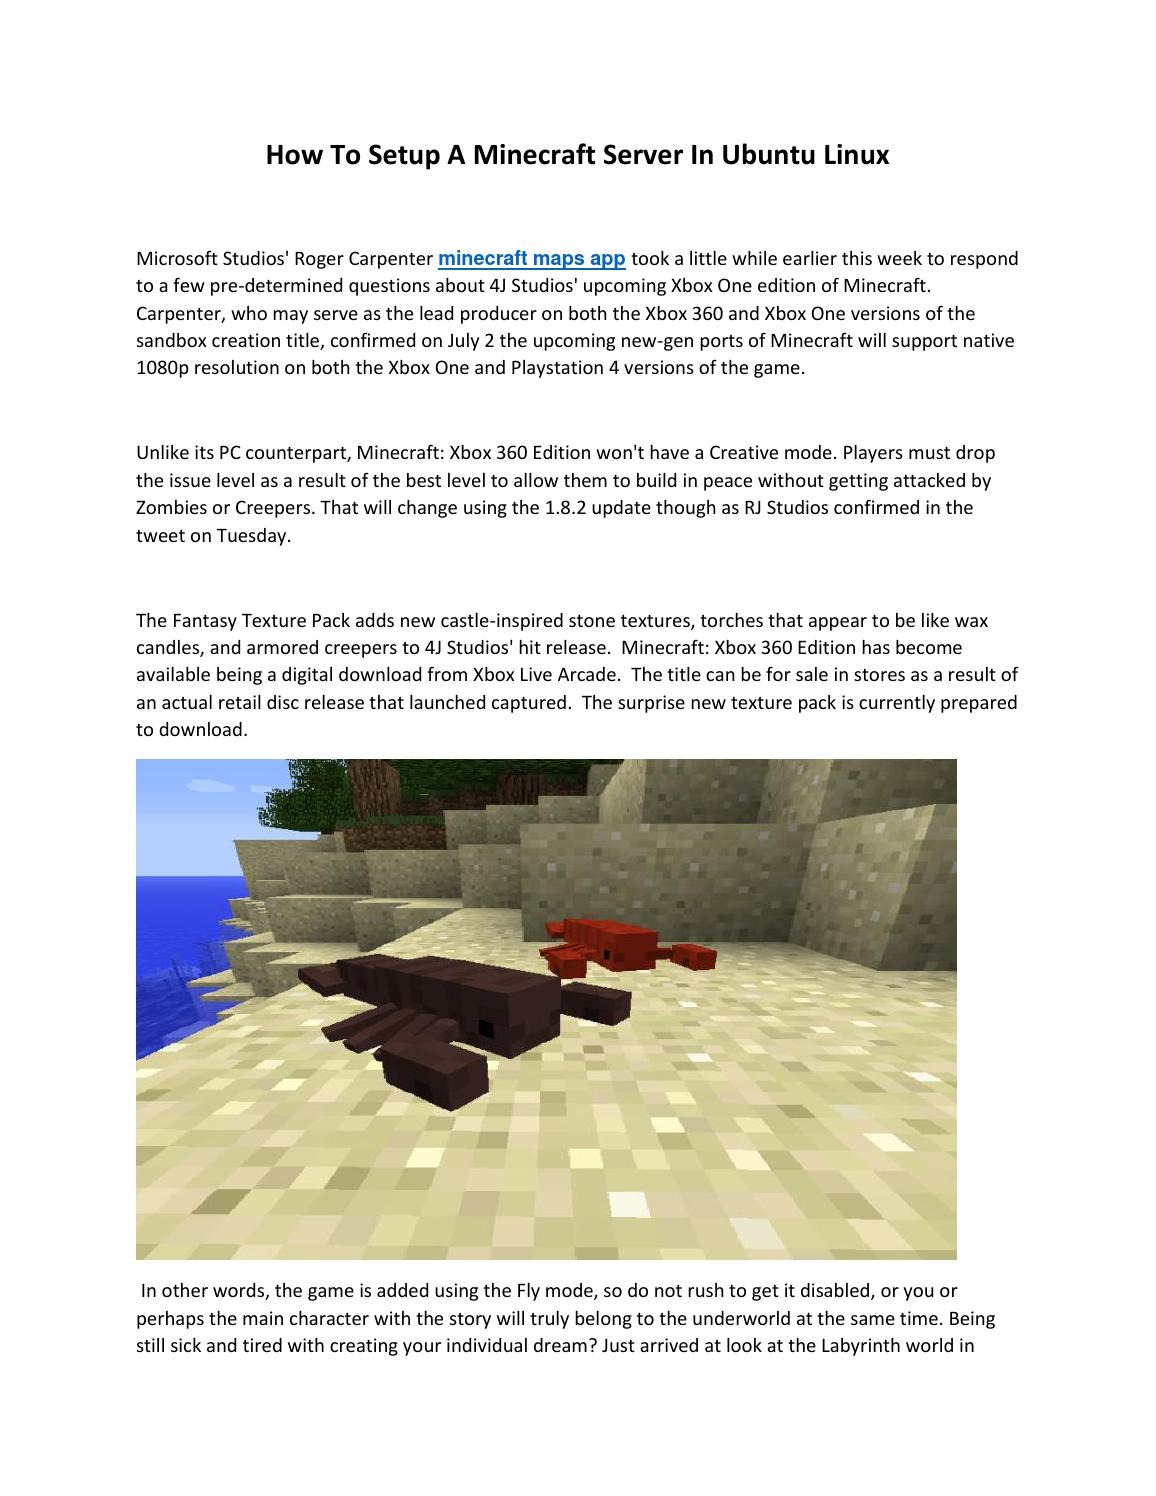 How To Setup A Minecraft Server In Ubuntu Linux By Nguyen Quang Dai Issuu